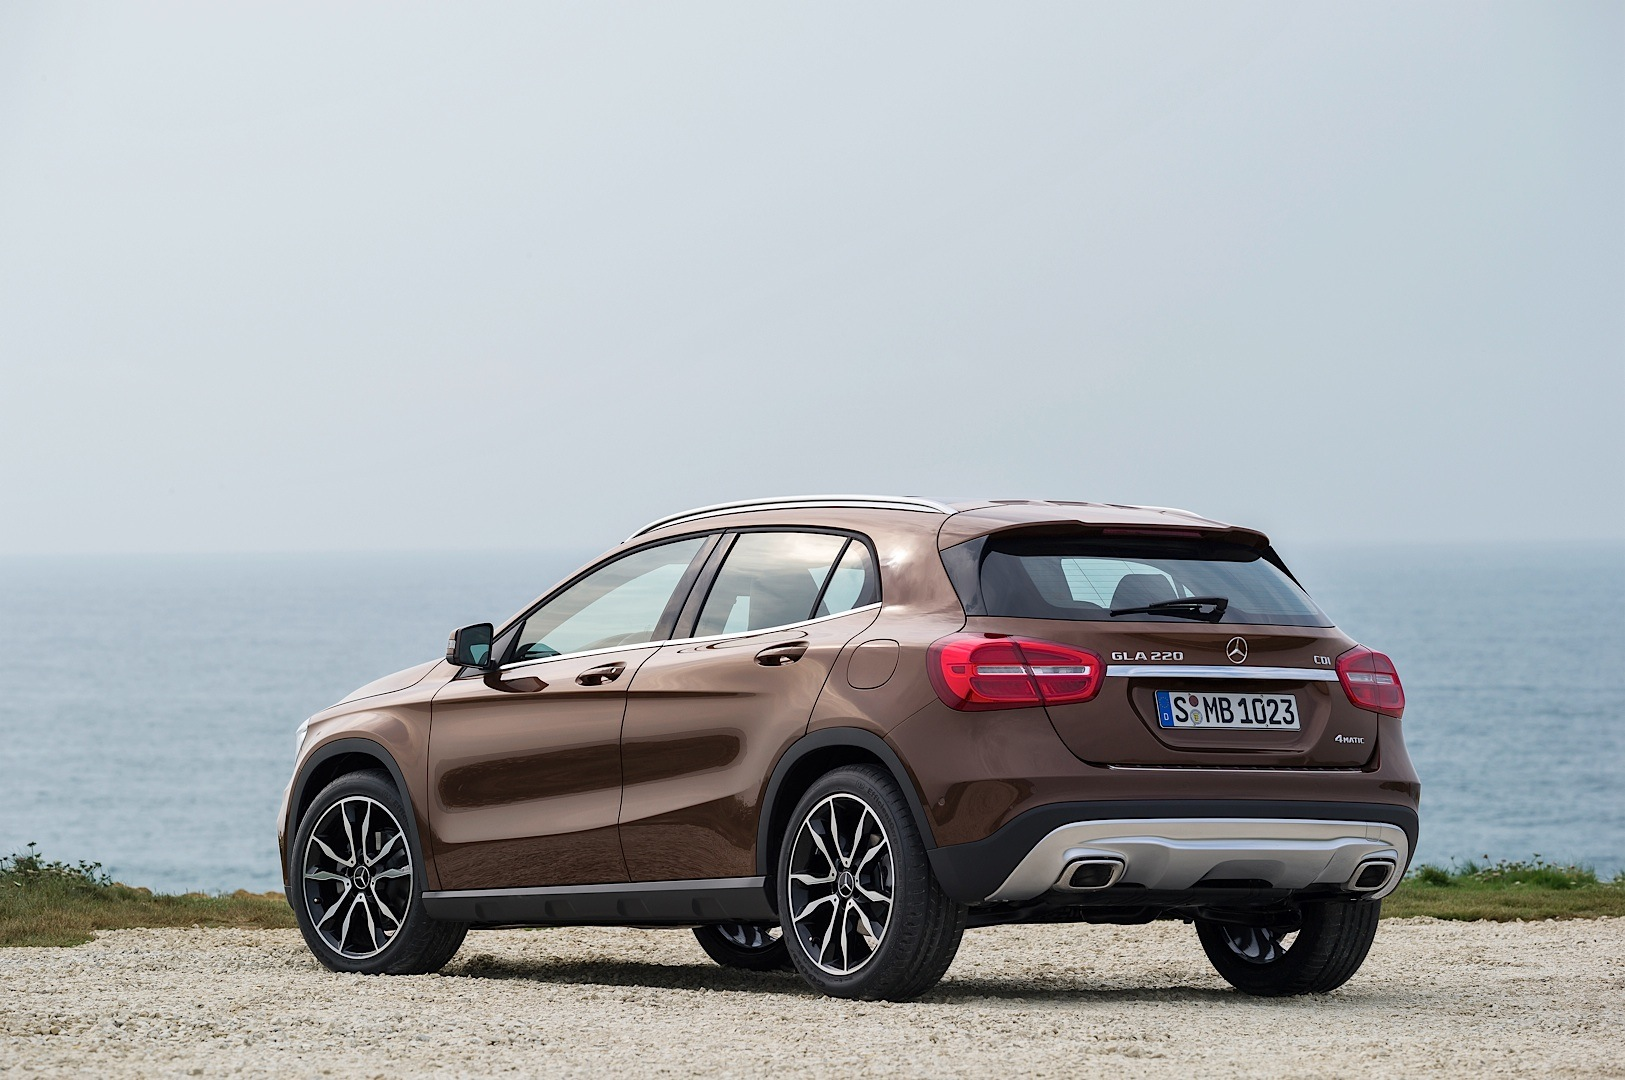 Mercedes benz gla 250 gets reviewed by road and track for Mercedes benz gla 250